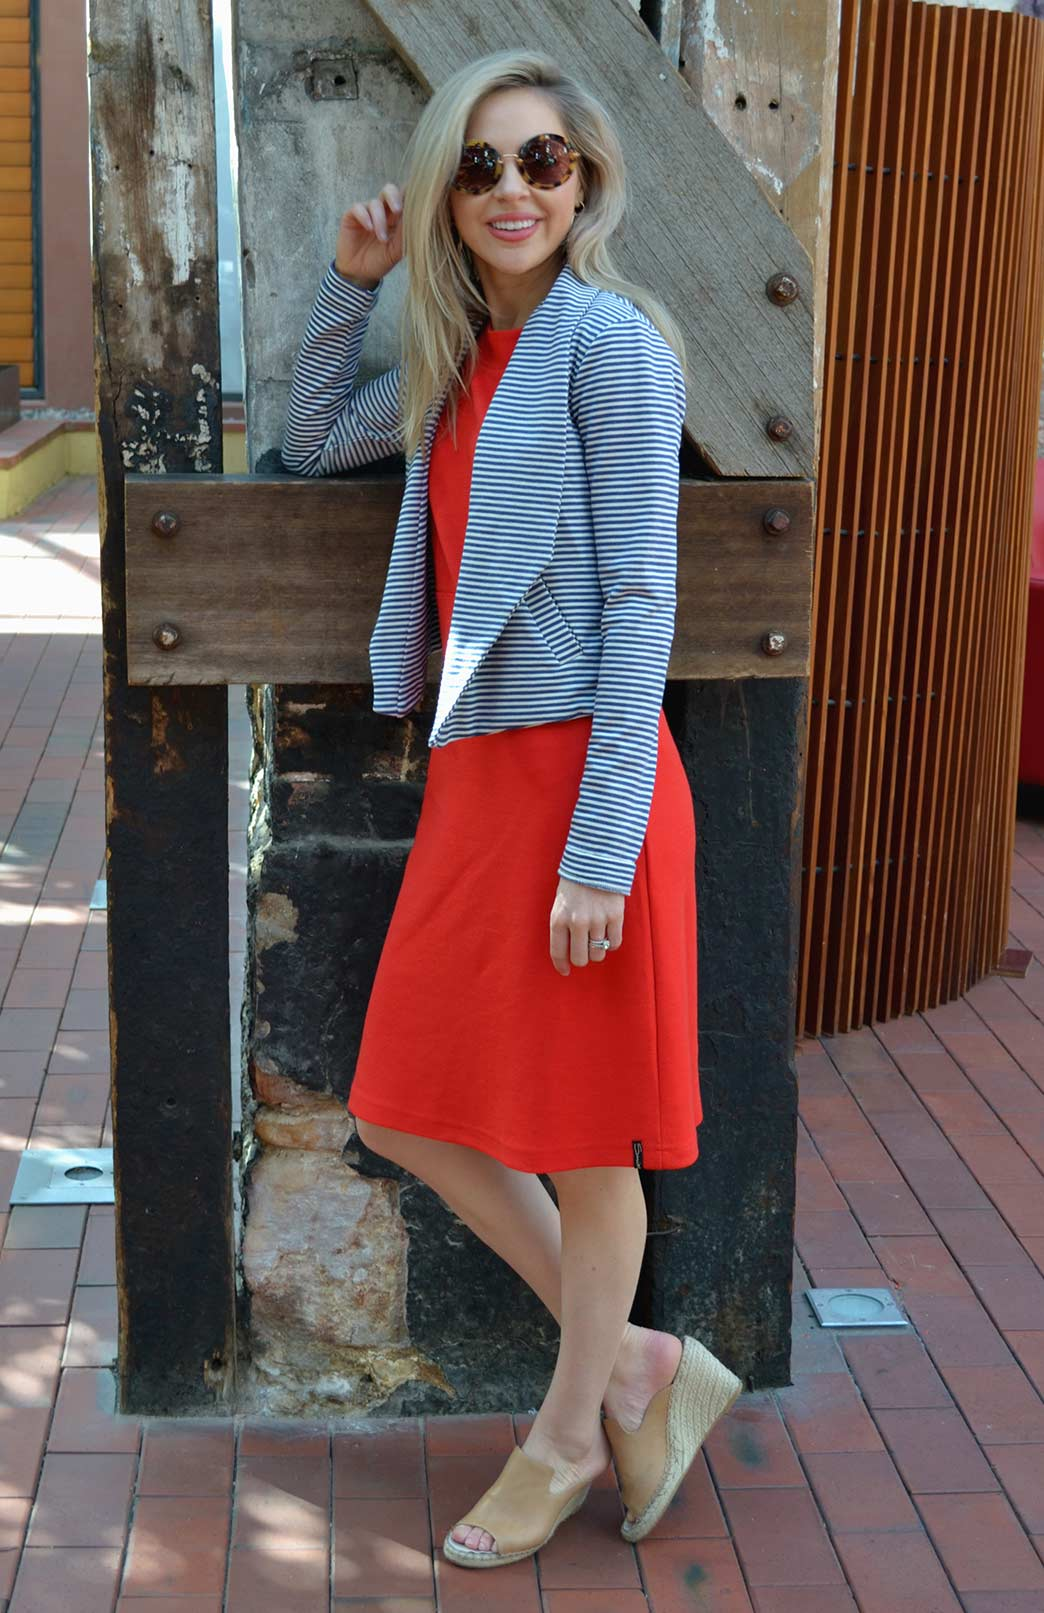 Lapel Jacket - Women's Merino Wool Organic Cotton Blend Striped Lapel - Smitten Merino Tasmania Australia